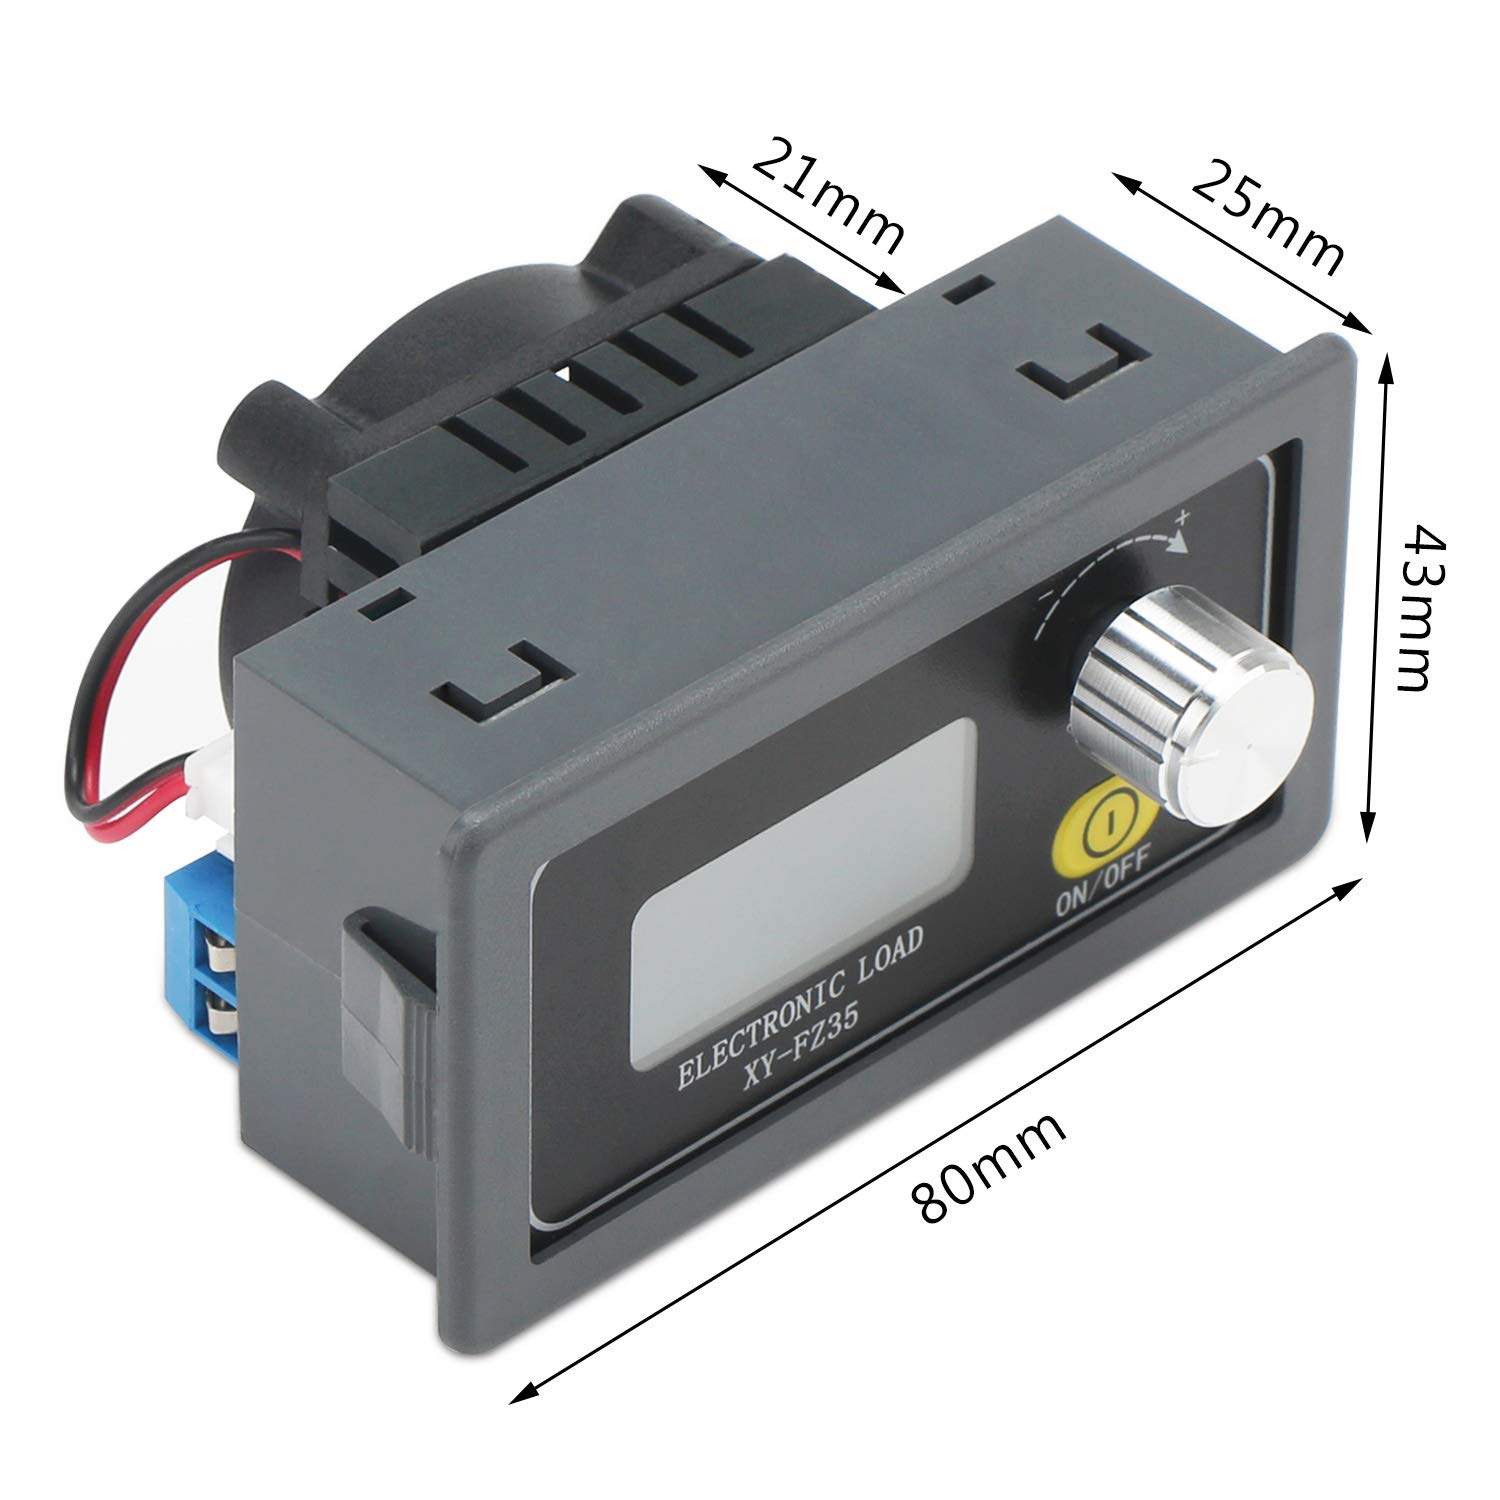 Electronic Load Tester DROK Adjustable Load Resistor Module FZ25 DC 5A 35W Battery Capacity Aging Discharge Detector Constant Current CC Resistance Module with LCD Display and Cooling Fan and Knob